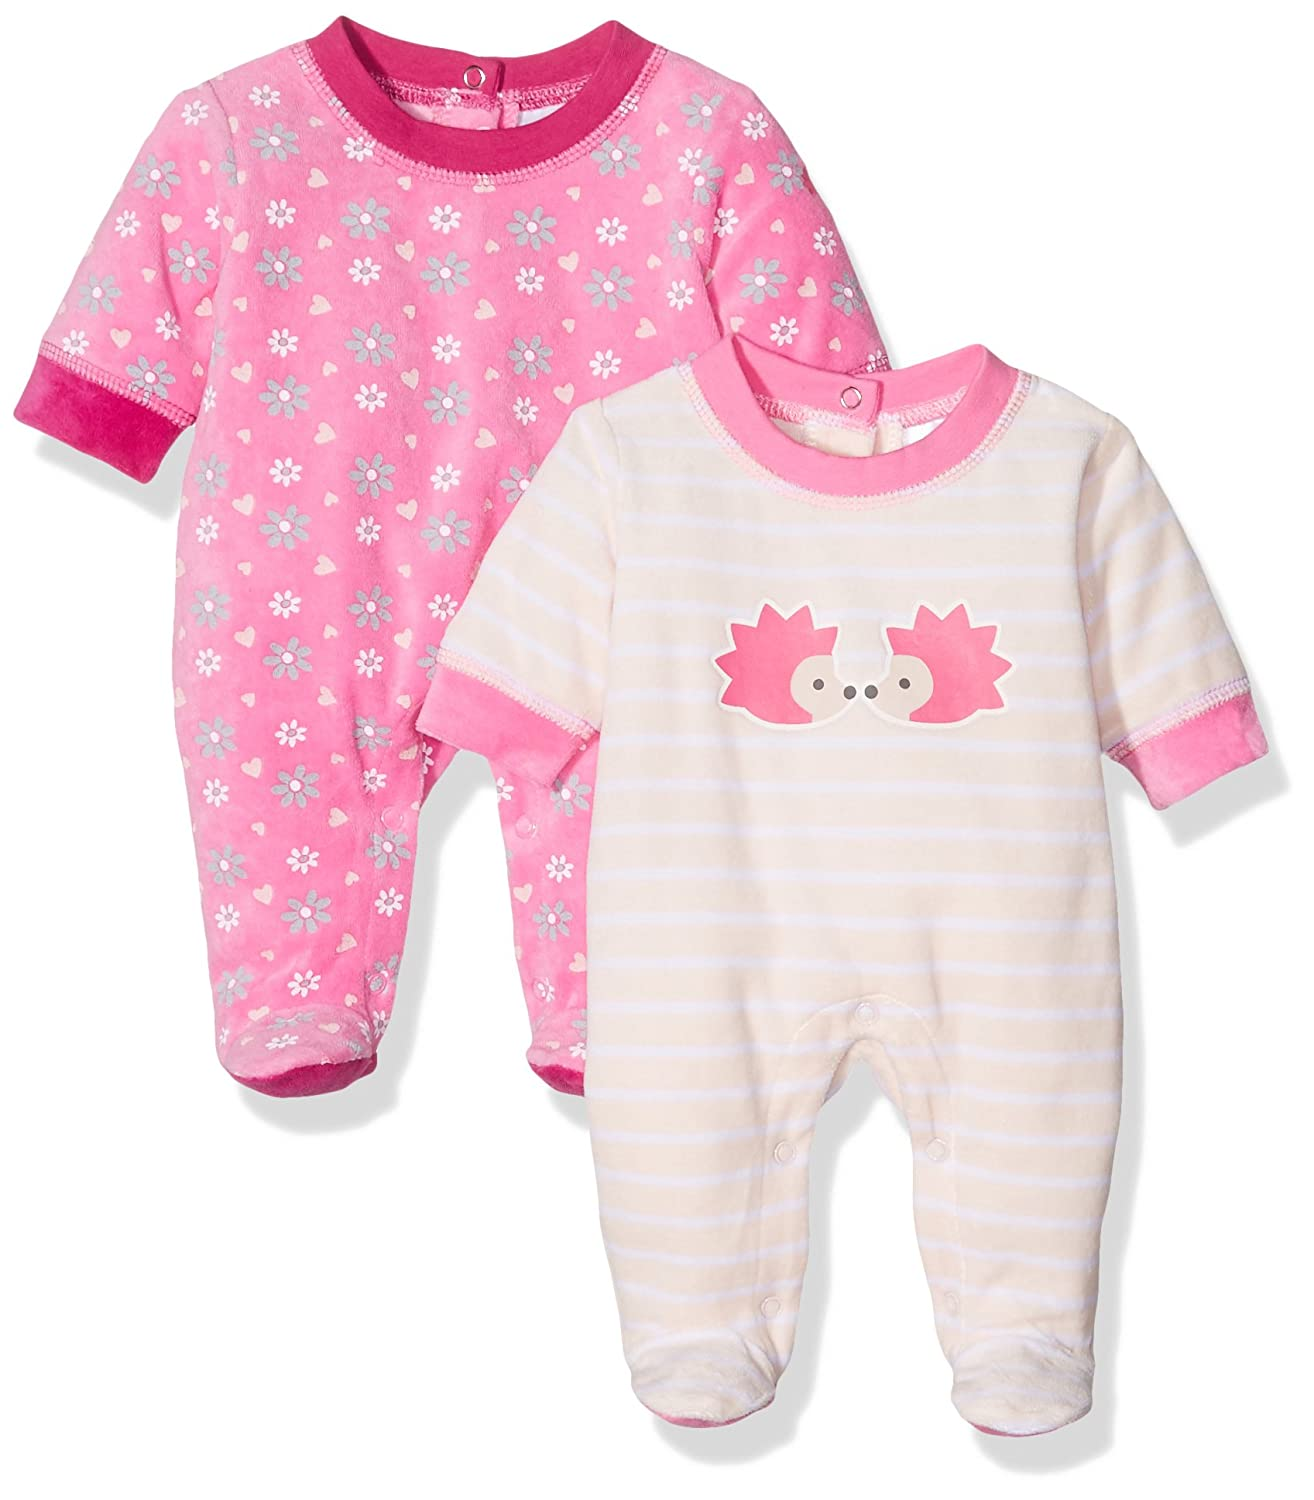 Twins Baby Girls Play & Sleepsuit Graphic Julius Hüpeden GmbH 2 030 10